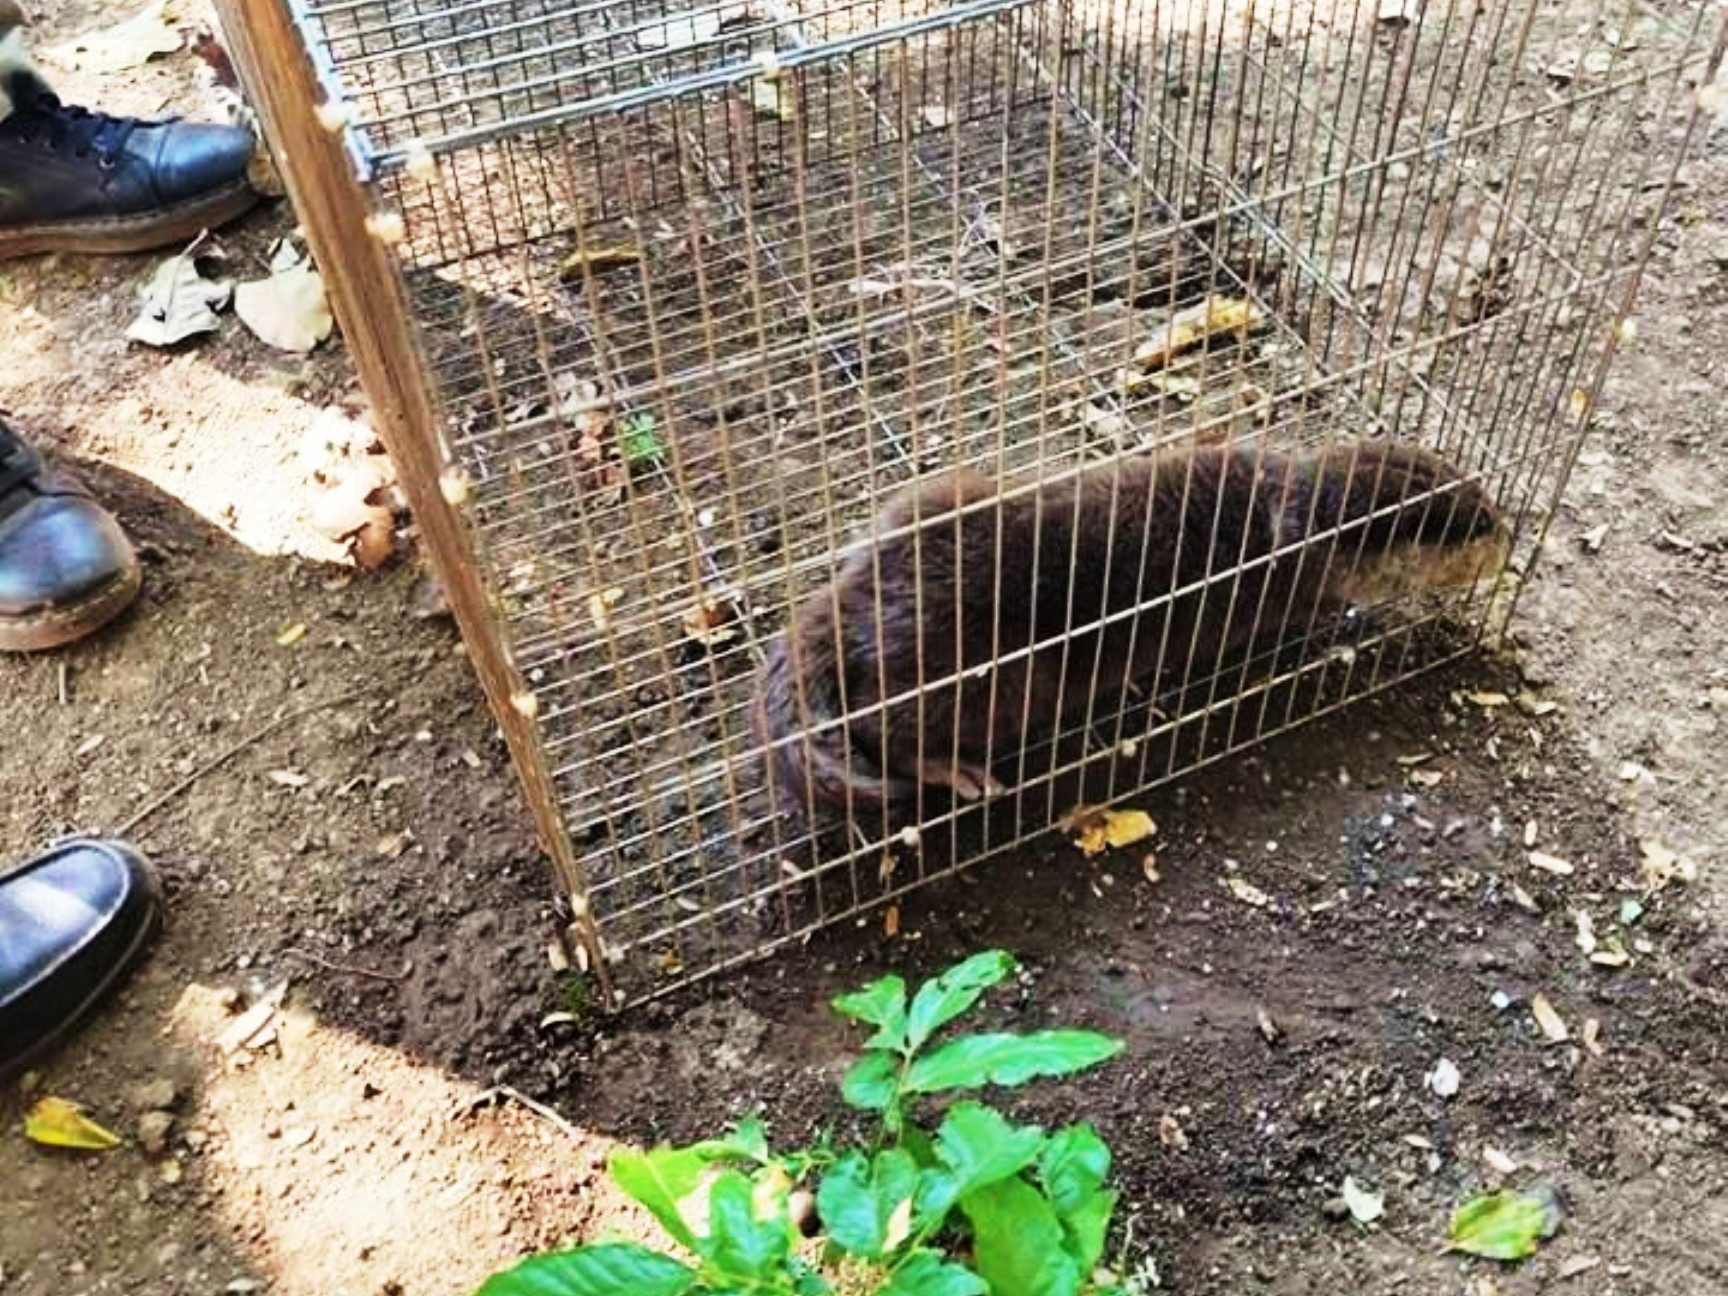 Smooth-coated otter rescue operation Otter rescued by Wildlife Police